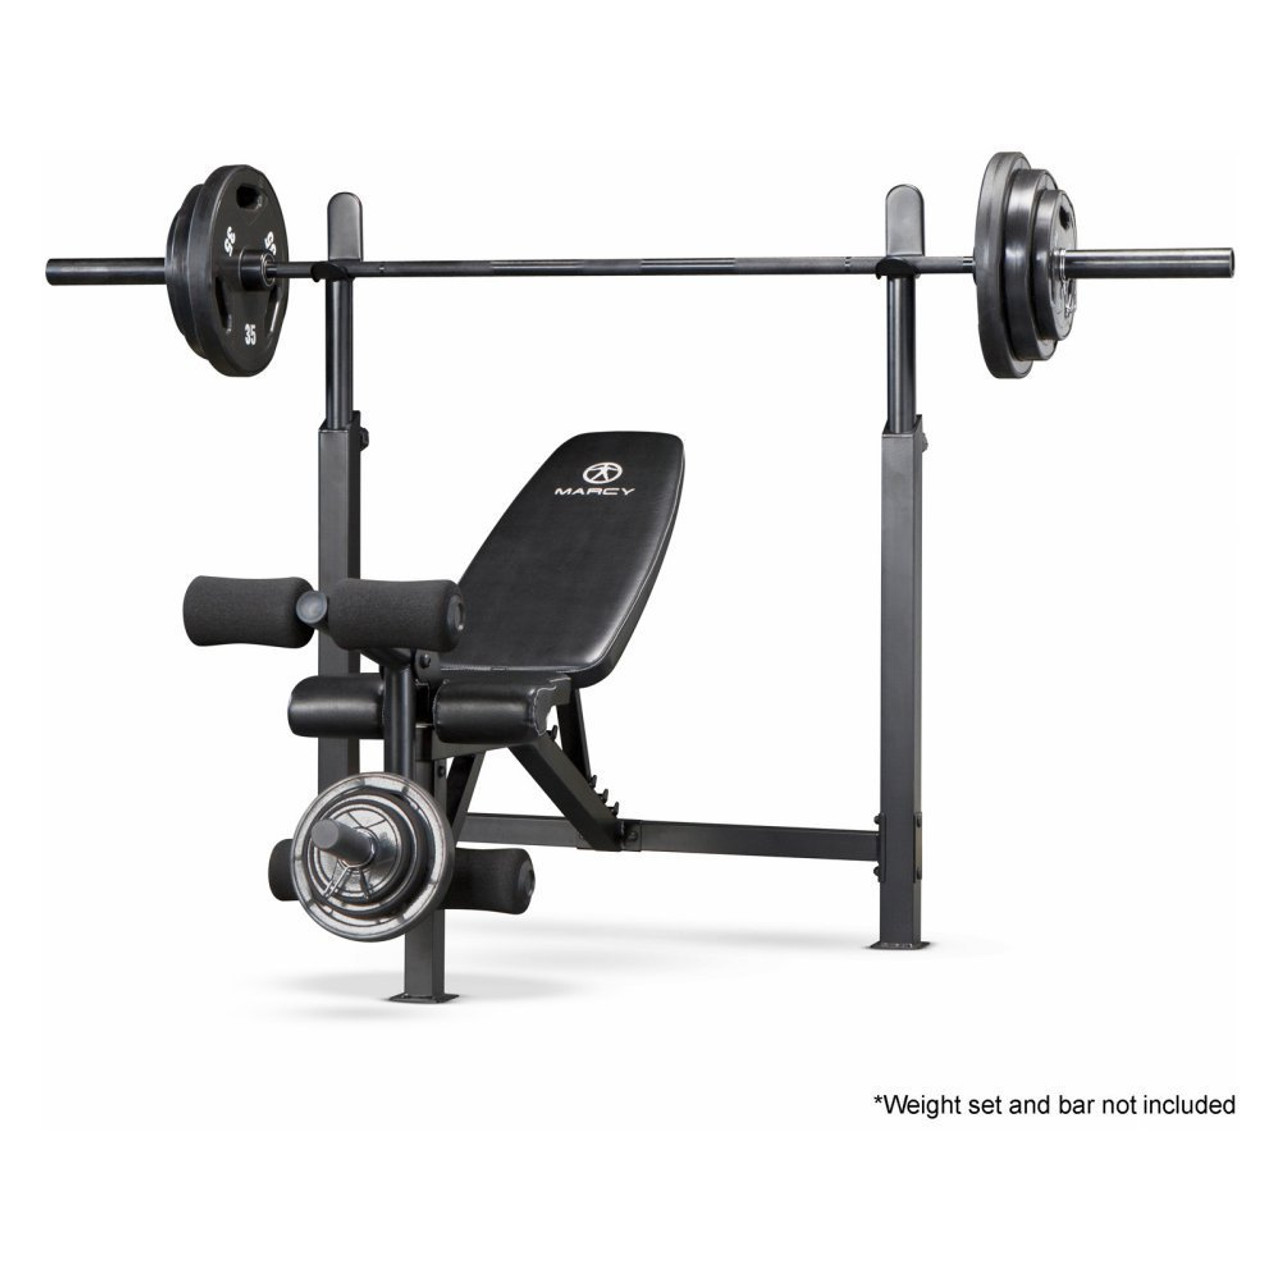 benches amazon weight com larger marcy bench storage view mwb dp folding olympic standard easy